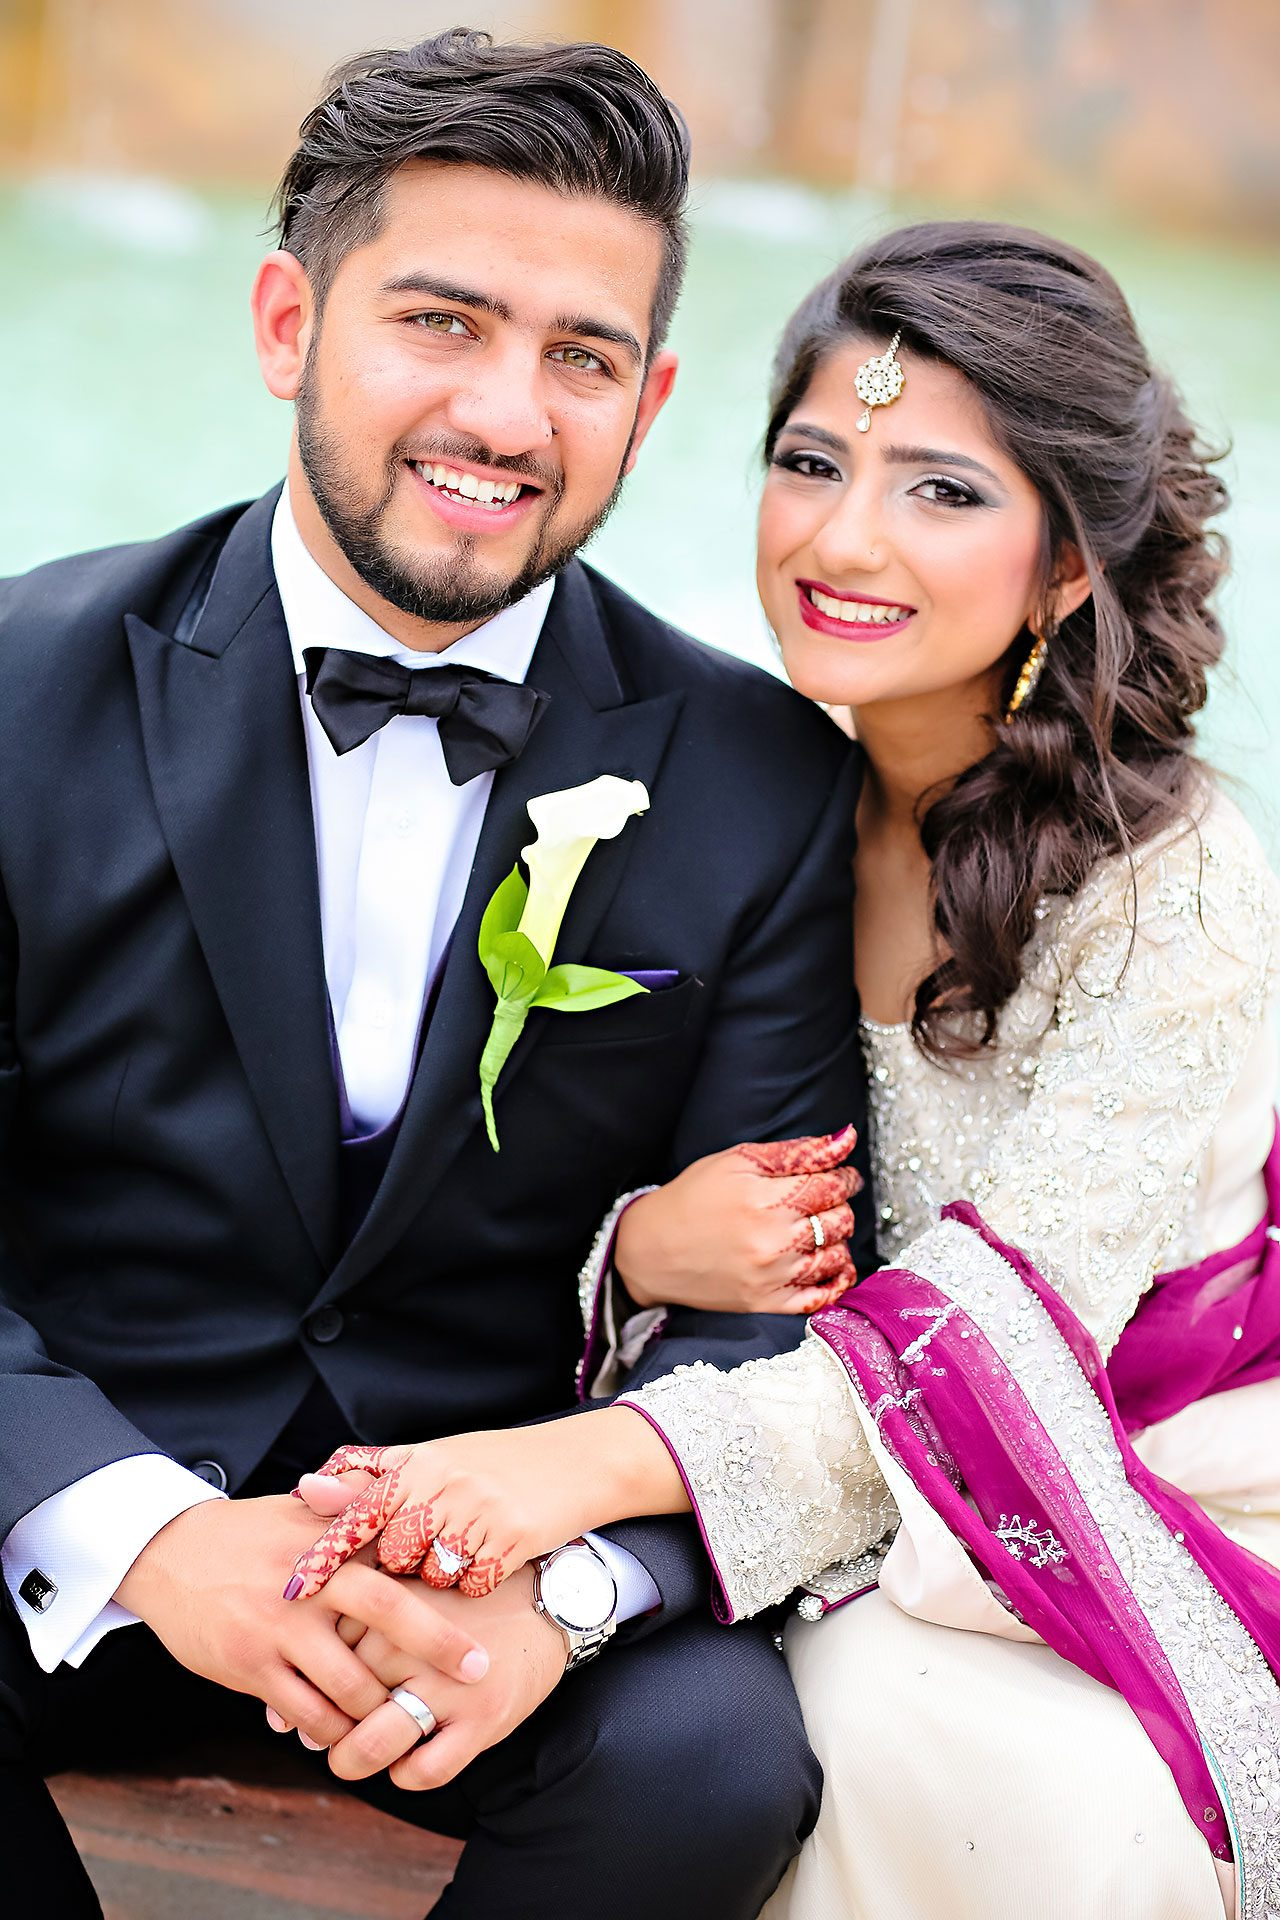 Haseeba Ammar Indianapolis Pakistani Wedding Reception 050